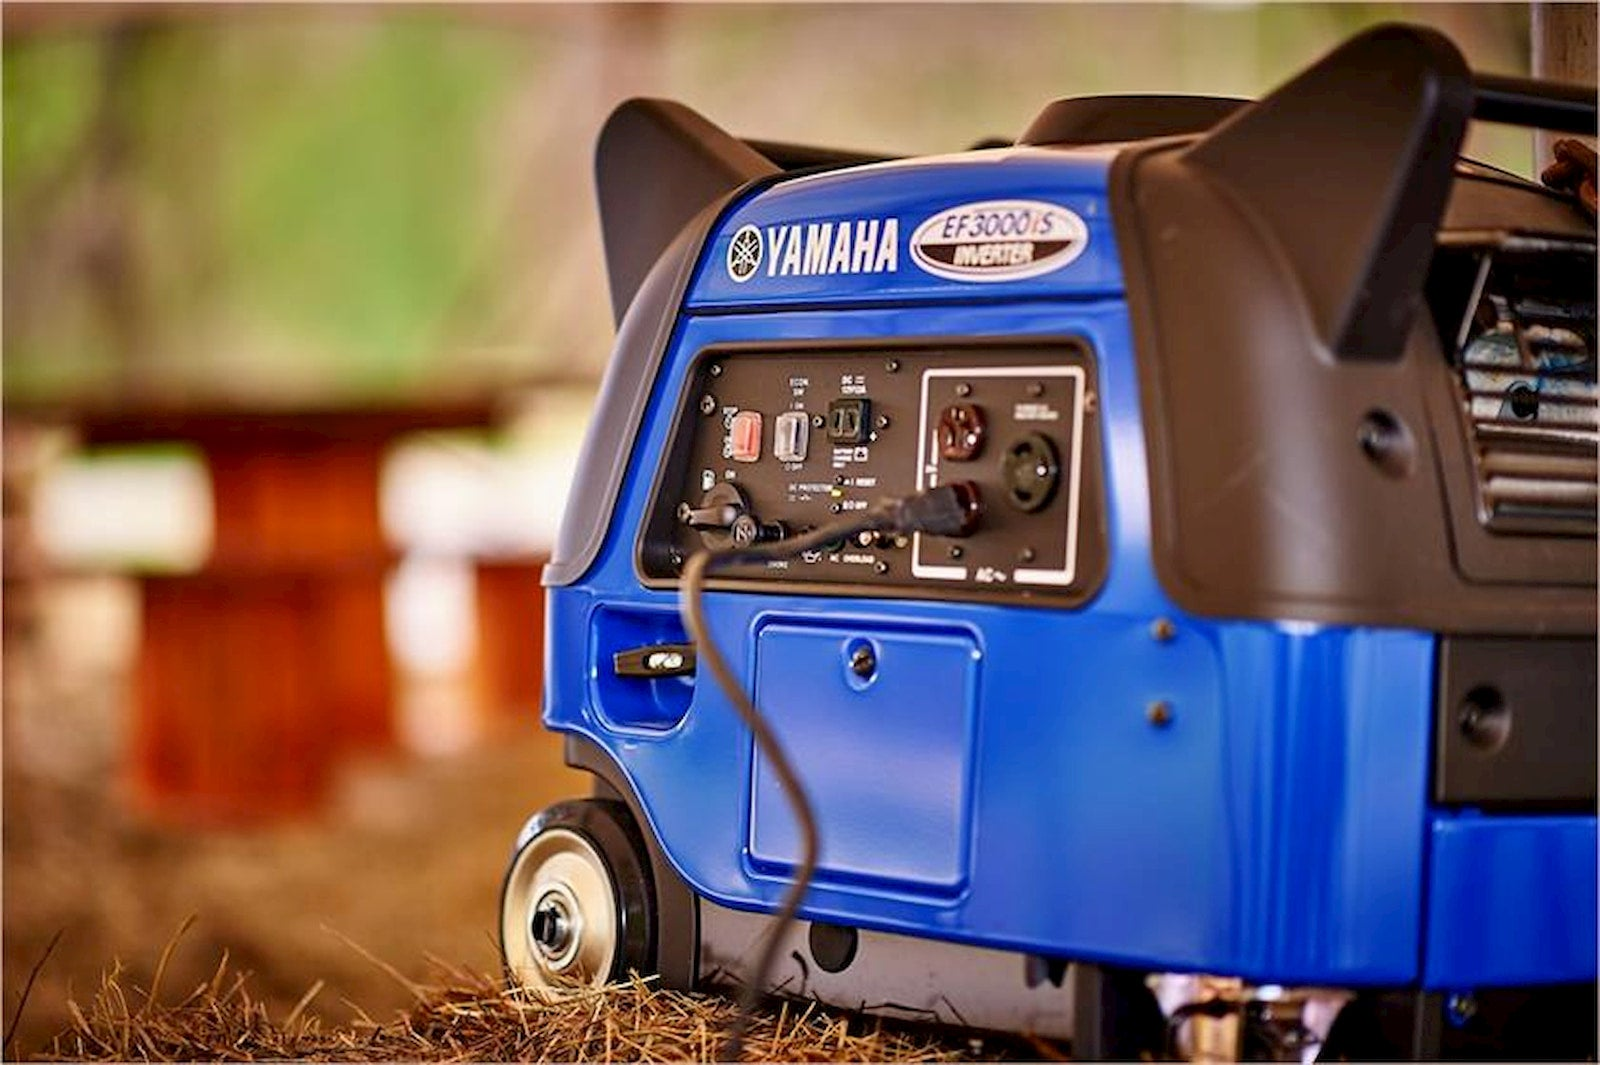 Blue generator on wheels on grass.